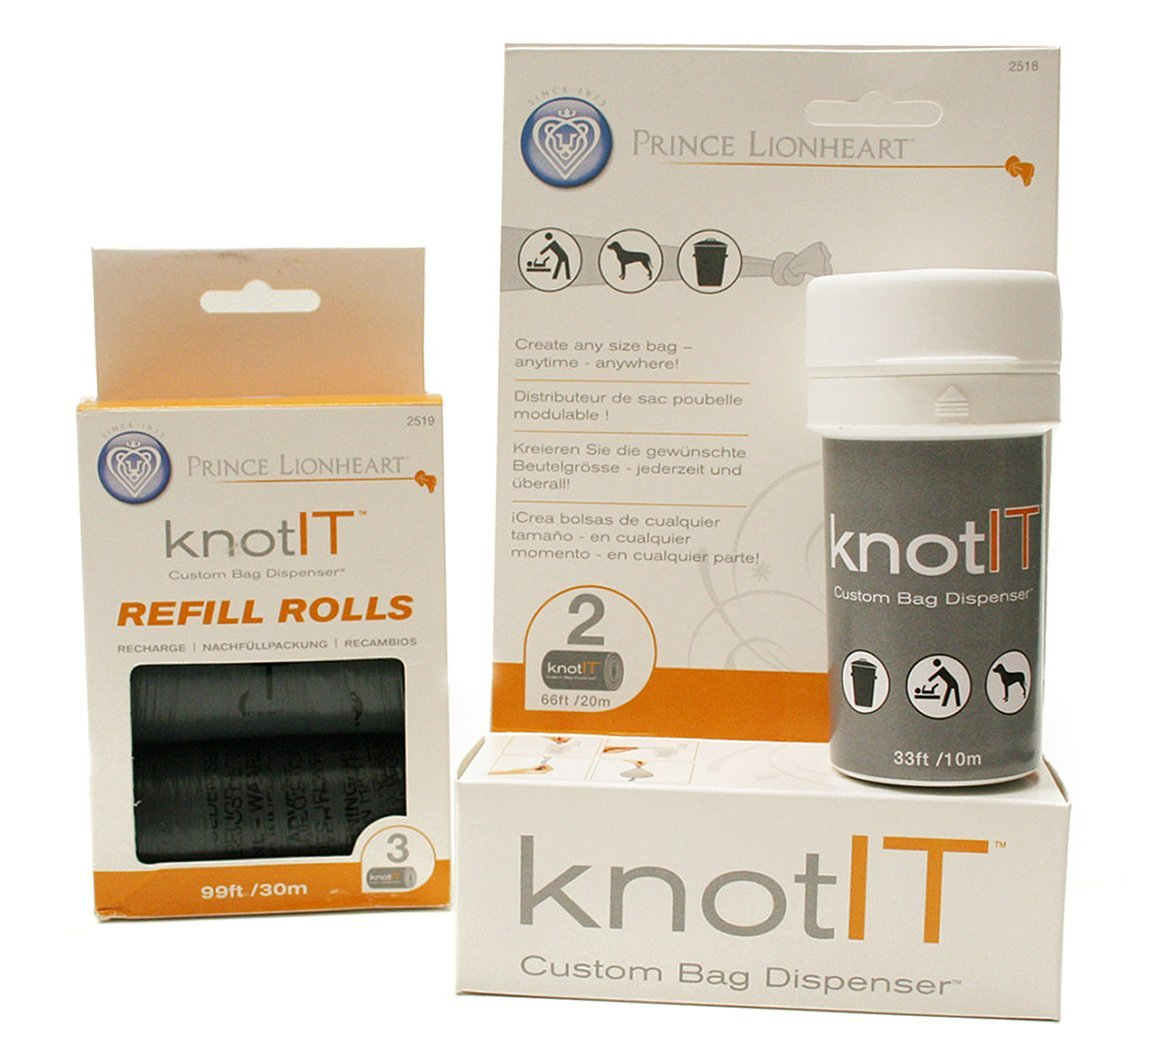 Prince Lionheart Knot IT Bag Dispenser and Knot IT Bag Refills